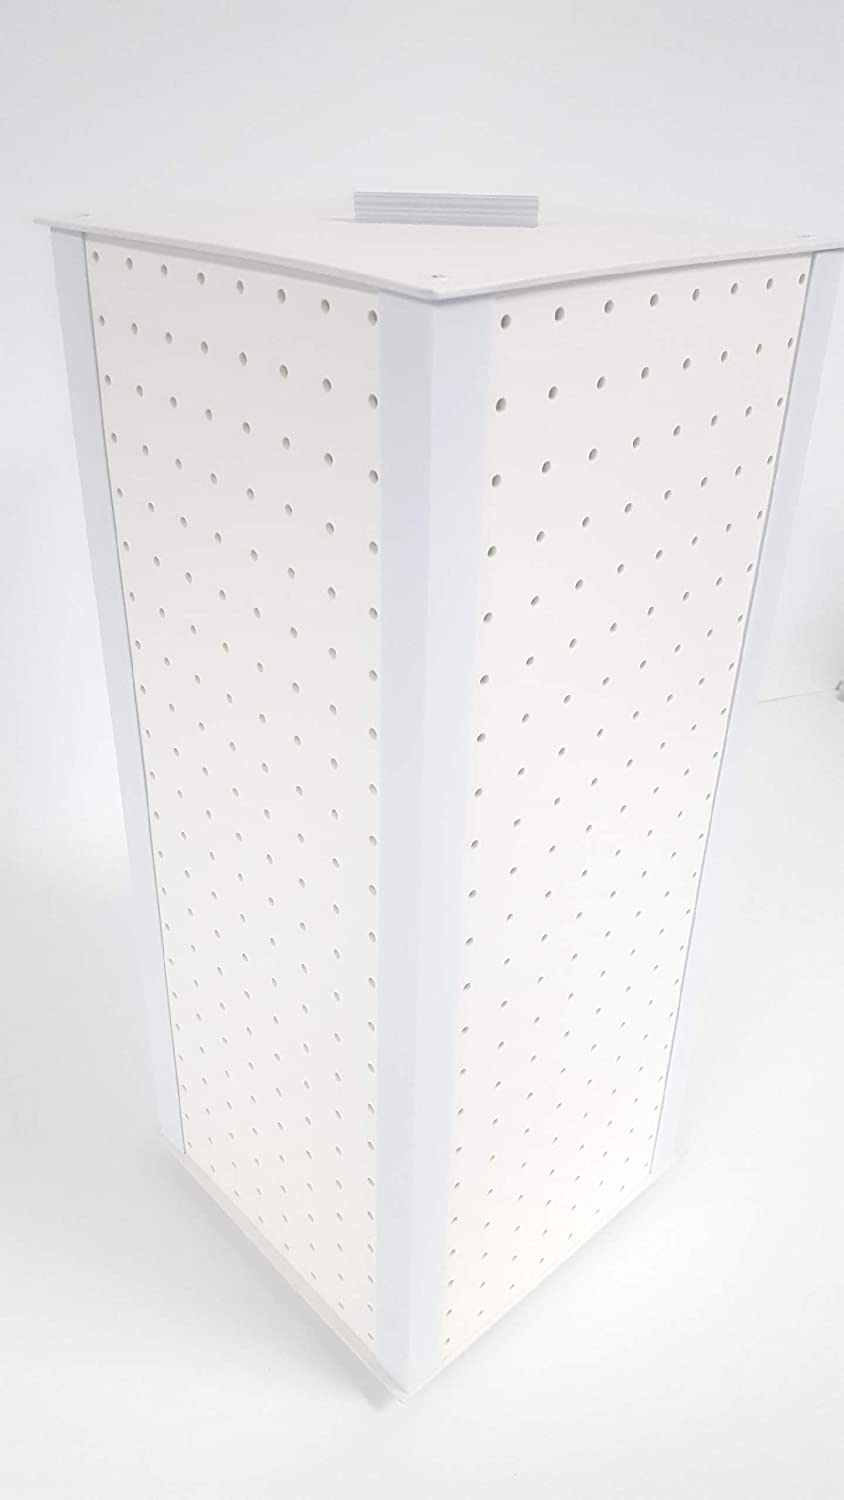 Playwin All White 4-Sided Revolving Pegboard Countertop Display (23 x 9 1/2 Inches)